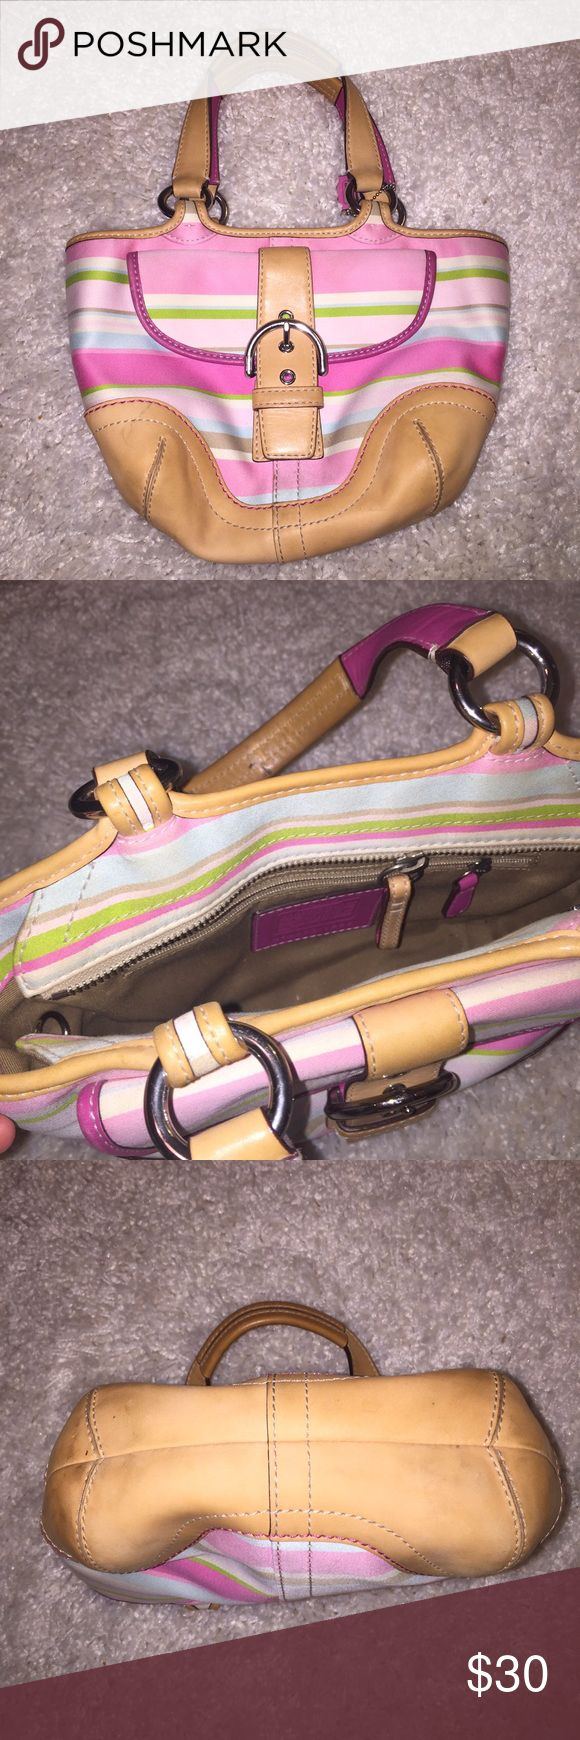 Coach Satchel Coach Satchel in good condition. It has some wear and tear but is a great price and is super fun colors for the spring and summertime!😊 Coach Bags Satchels